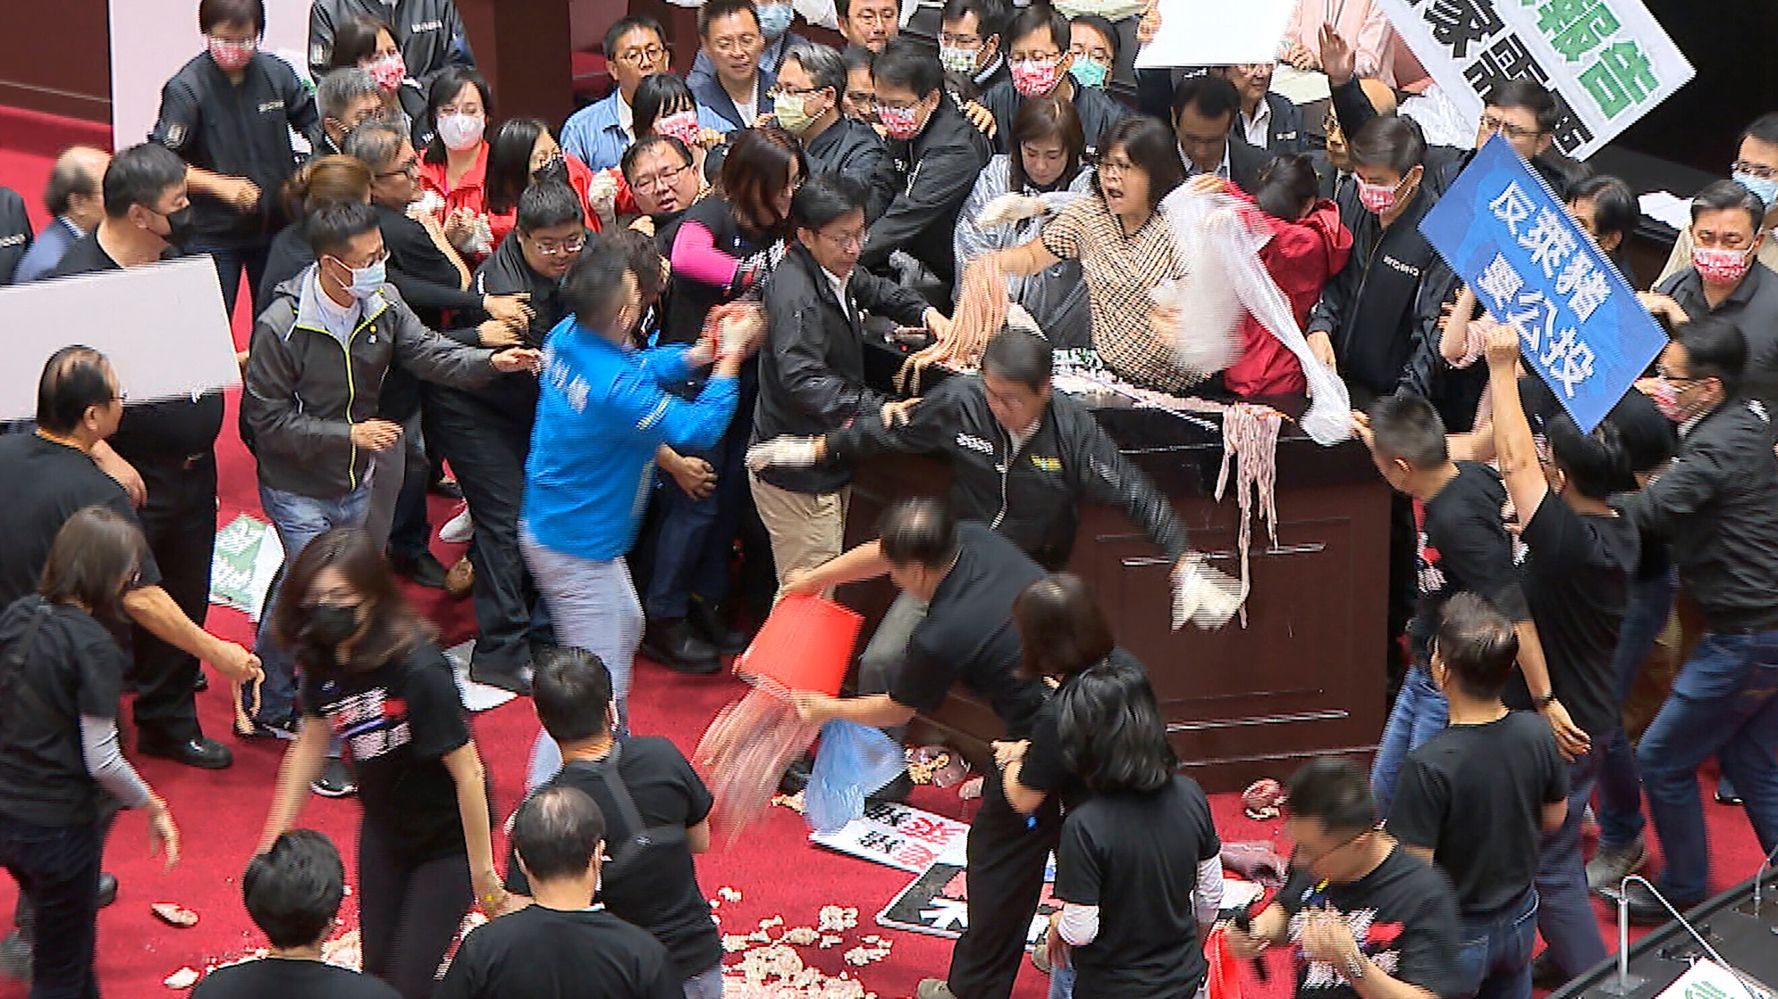 Pig Guts And Punches Fly In Taiwan Parliament Over Imports Of U.S. Meat